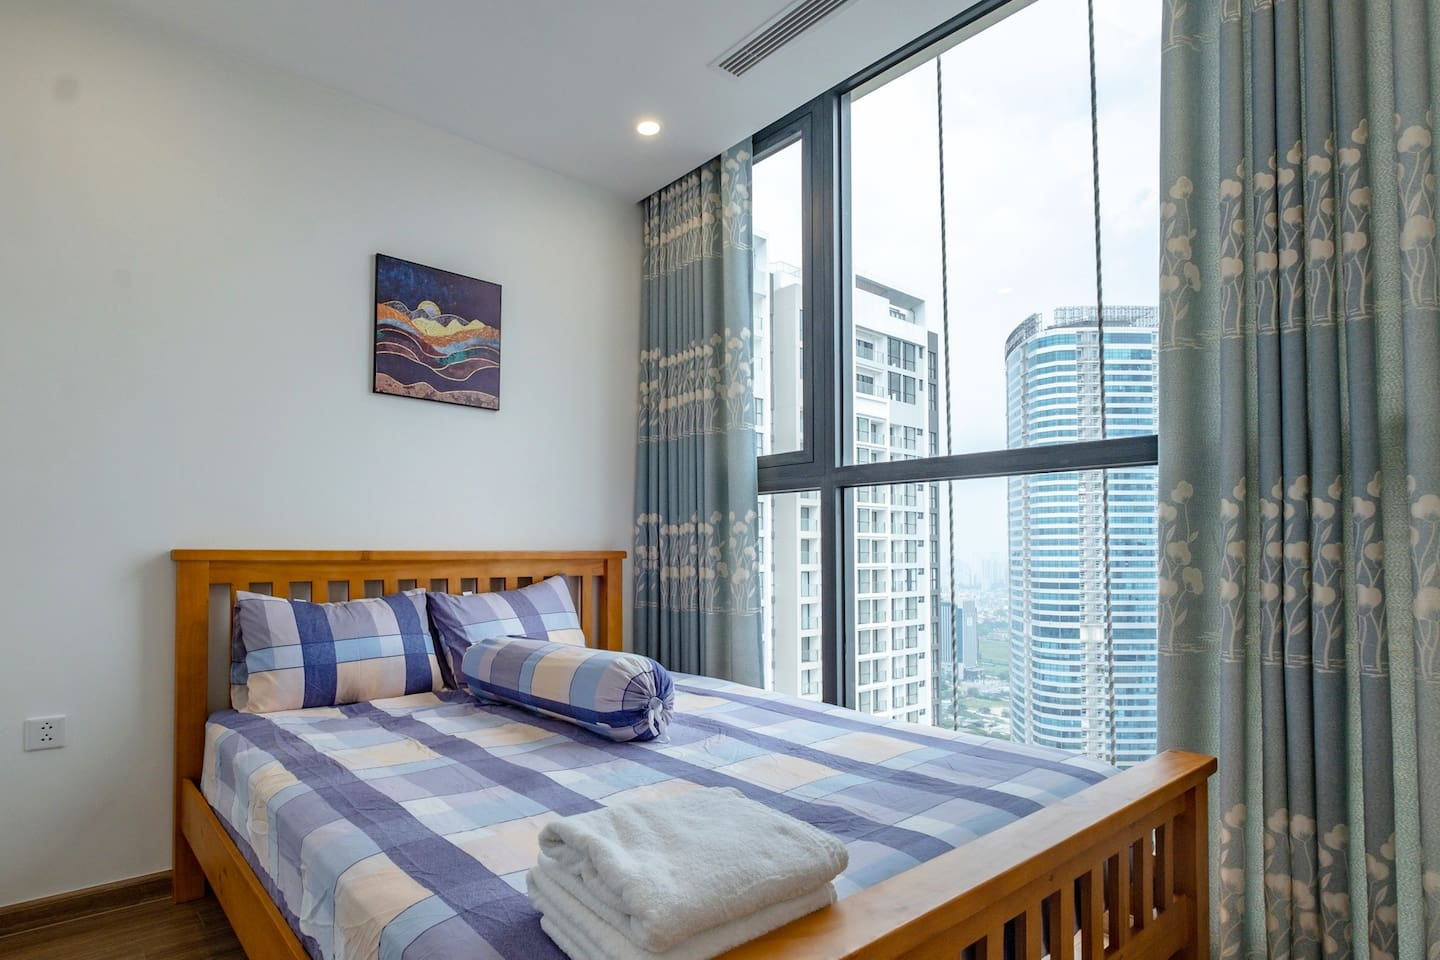 Inside bedroom: queen size bed next to large window. Whether in day or night time, it's relaxing to have such a nice view. The decor is both simple and cozy, to fit in everyone's taste